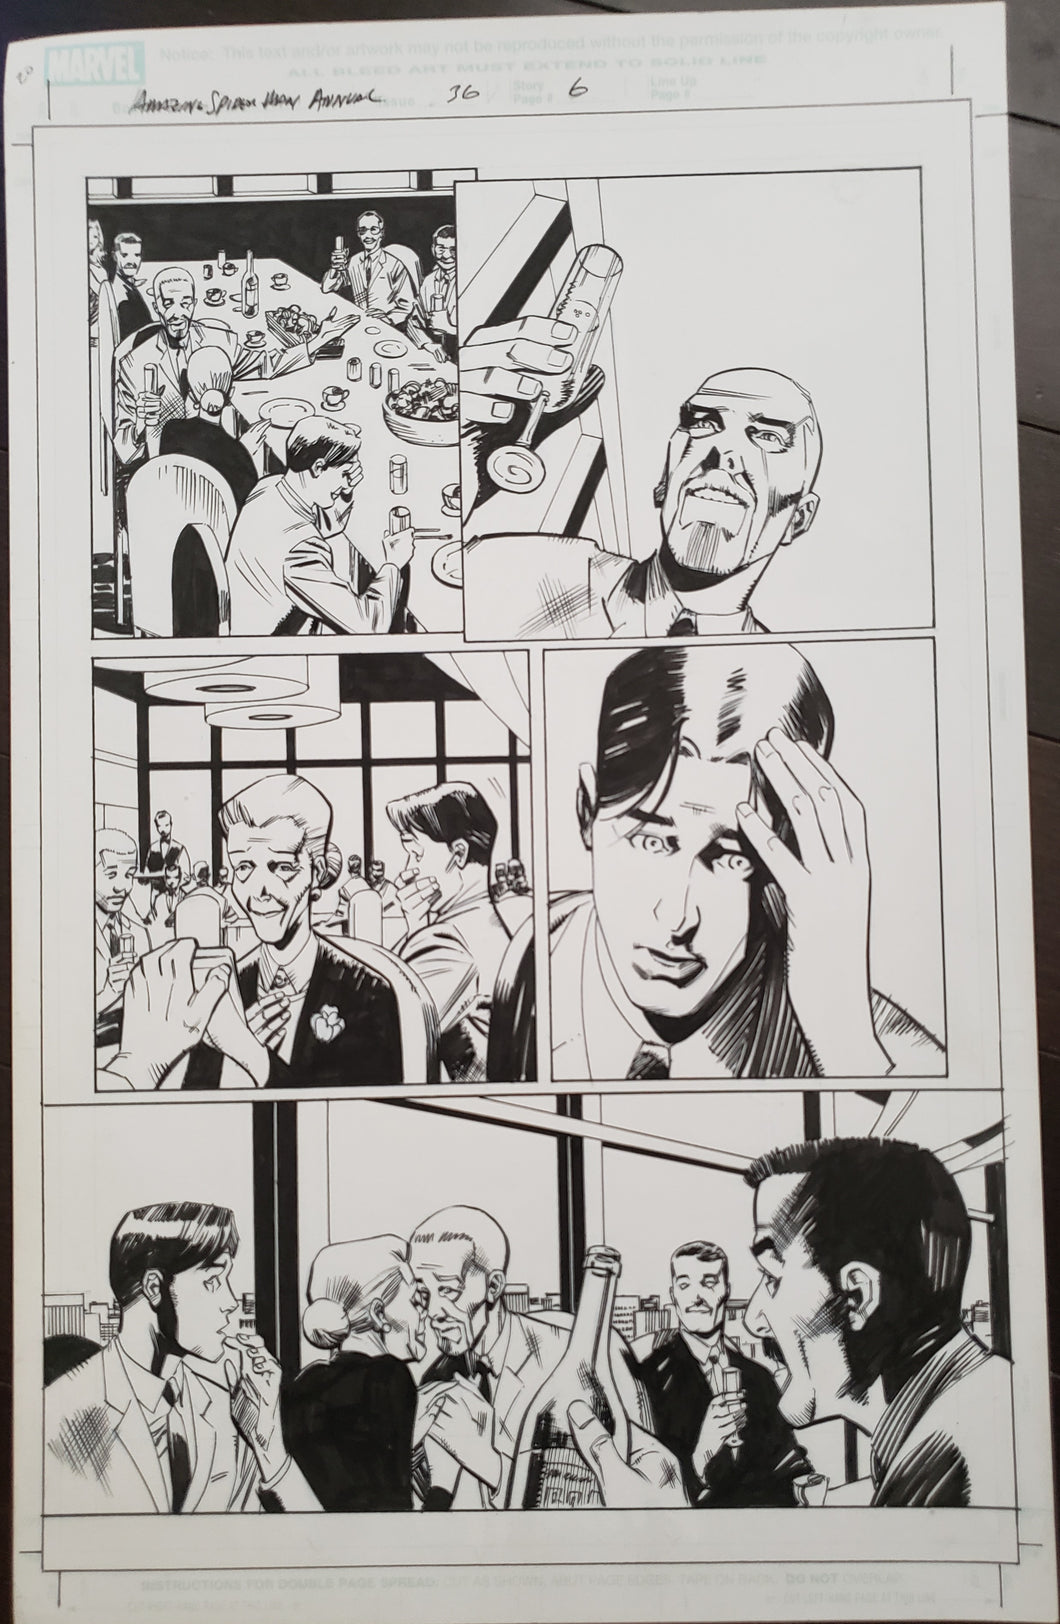 Amazing Spider-Man Annual 36 - Page 6 - Pat Oliffe / Andy Lanning